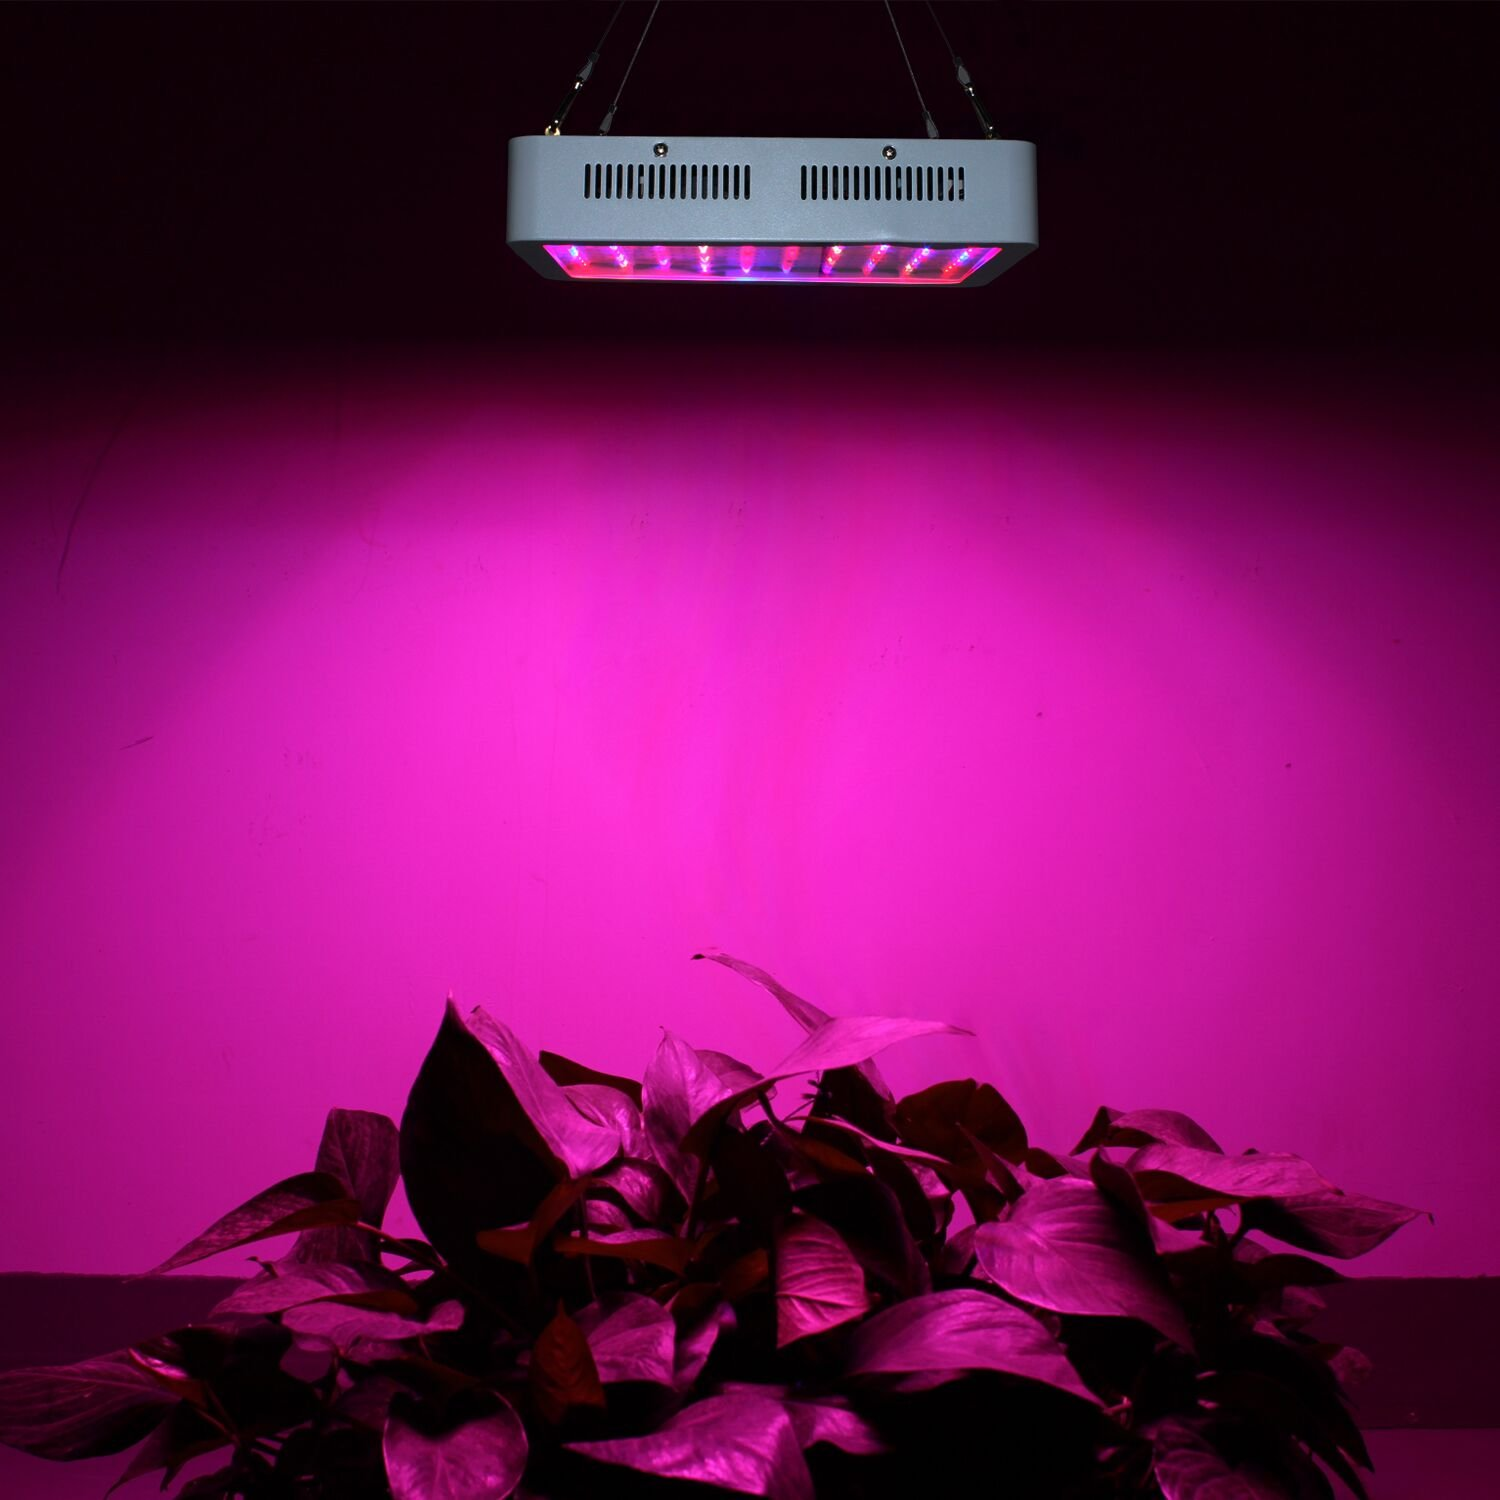 RYSA LIGHT LED Indoor Grow Light 1000W Full Spectrum Double Chips Growing Lamps with UV IR for Garden Plants Veg Flower Hydroponic Greenhouse by RYSA LIGHT (Image #9)